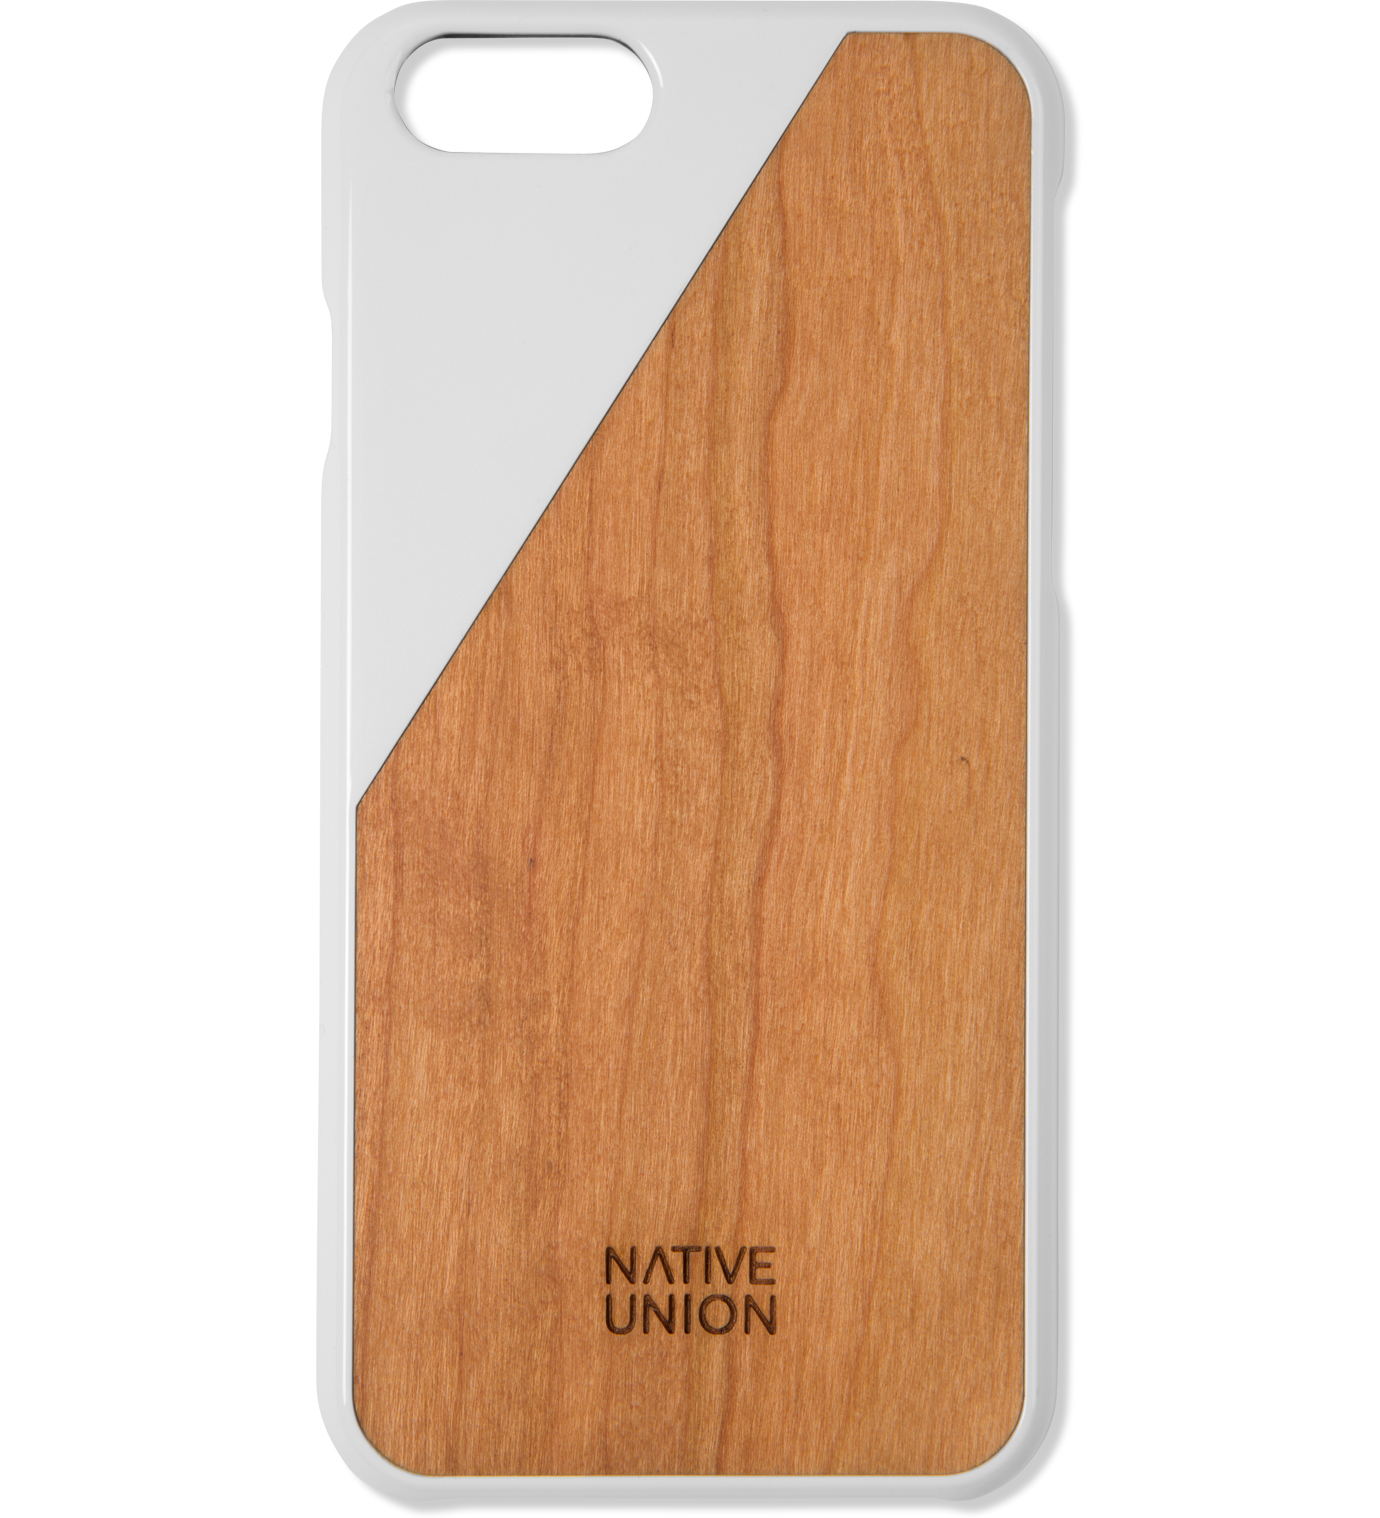 Wooden Native Union Clic Case iPhone 6